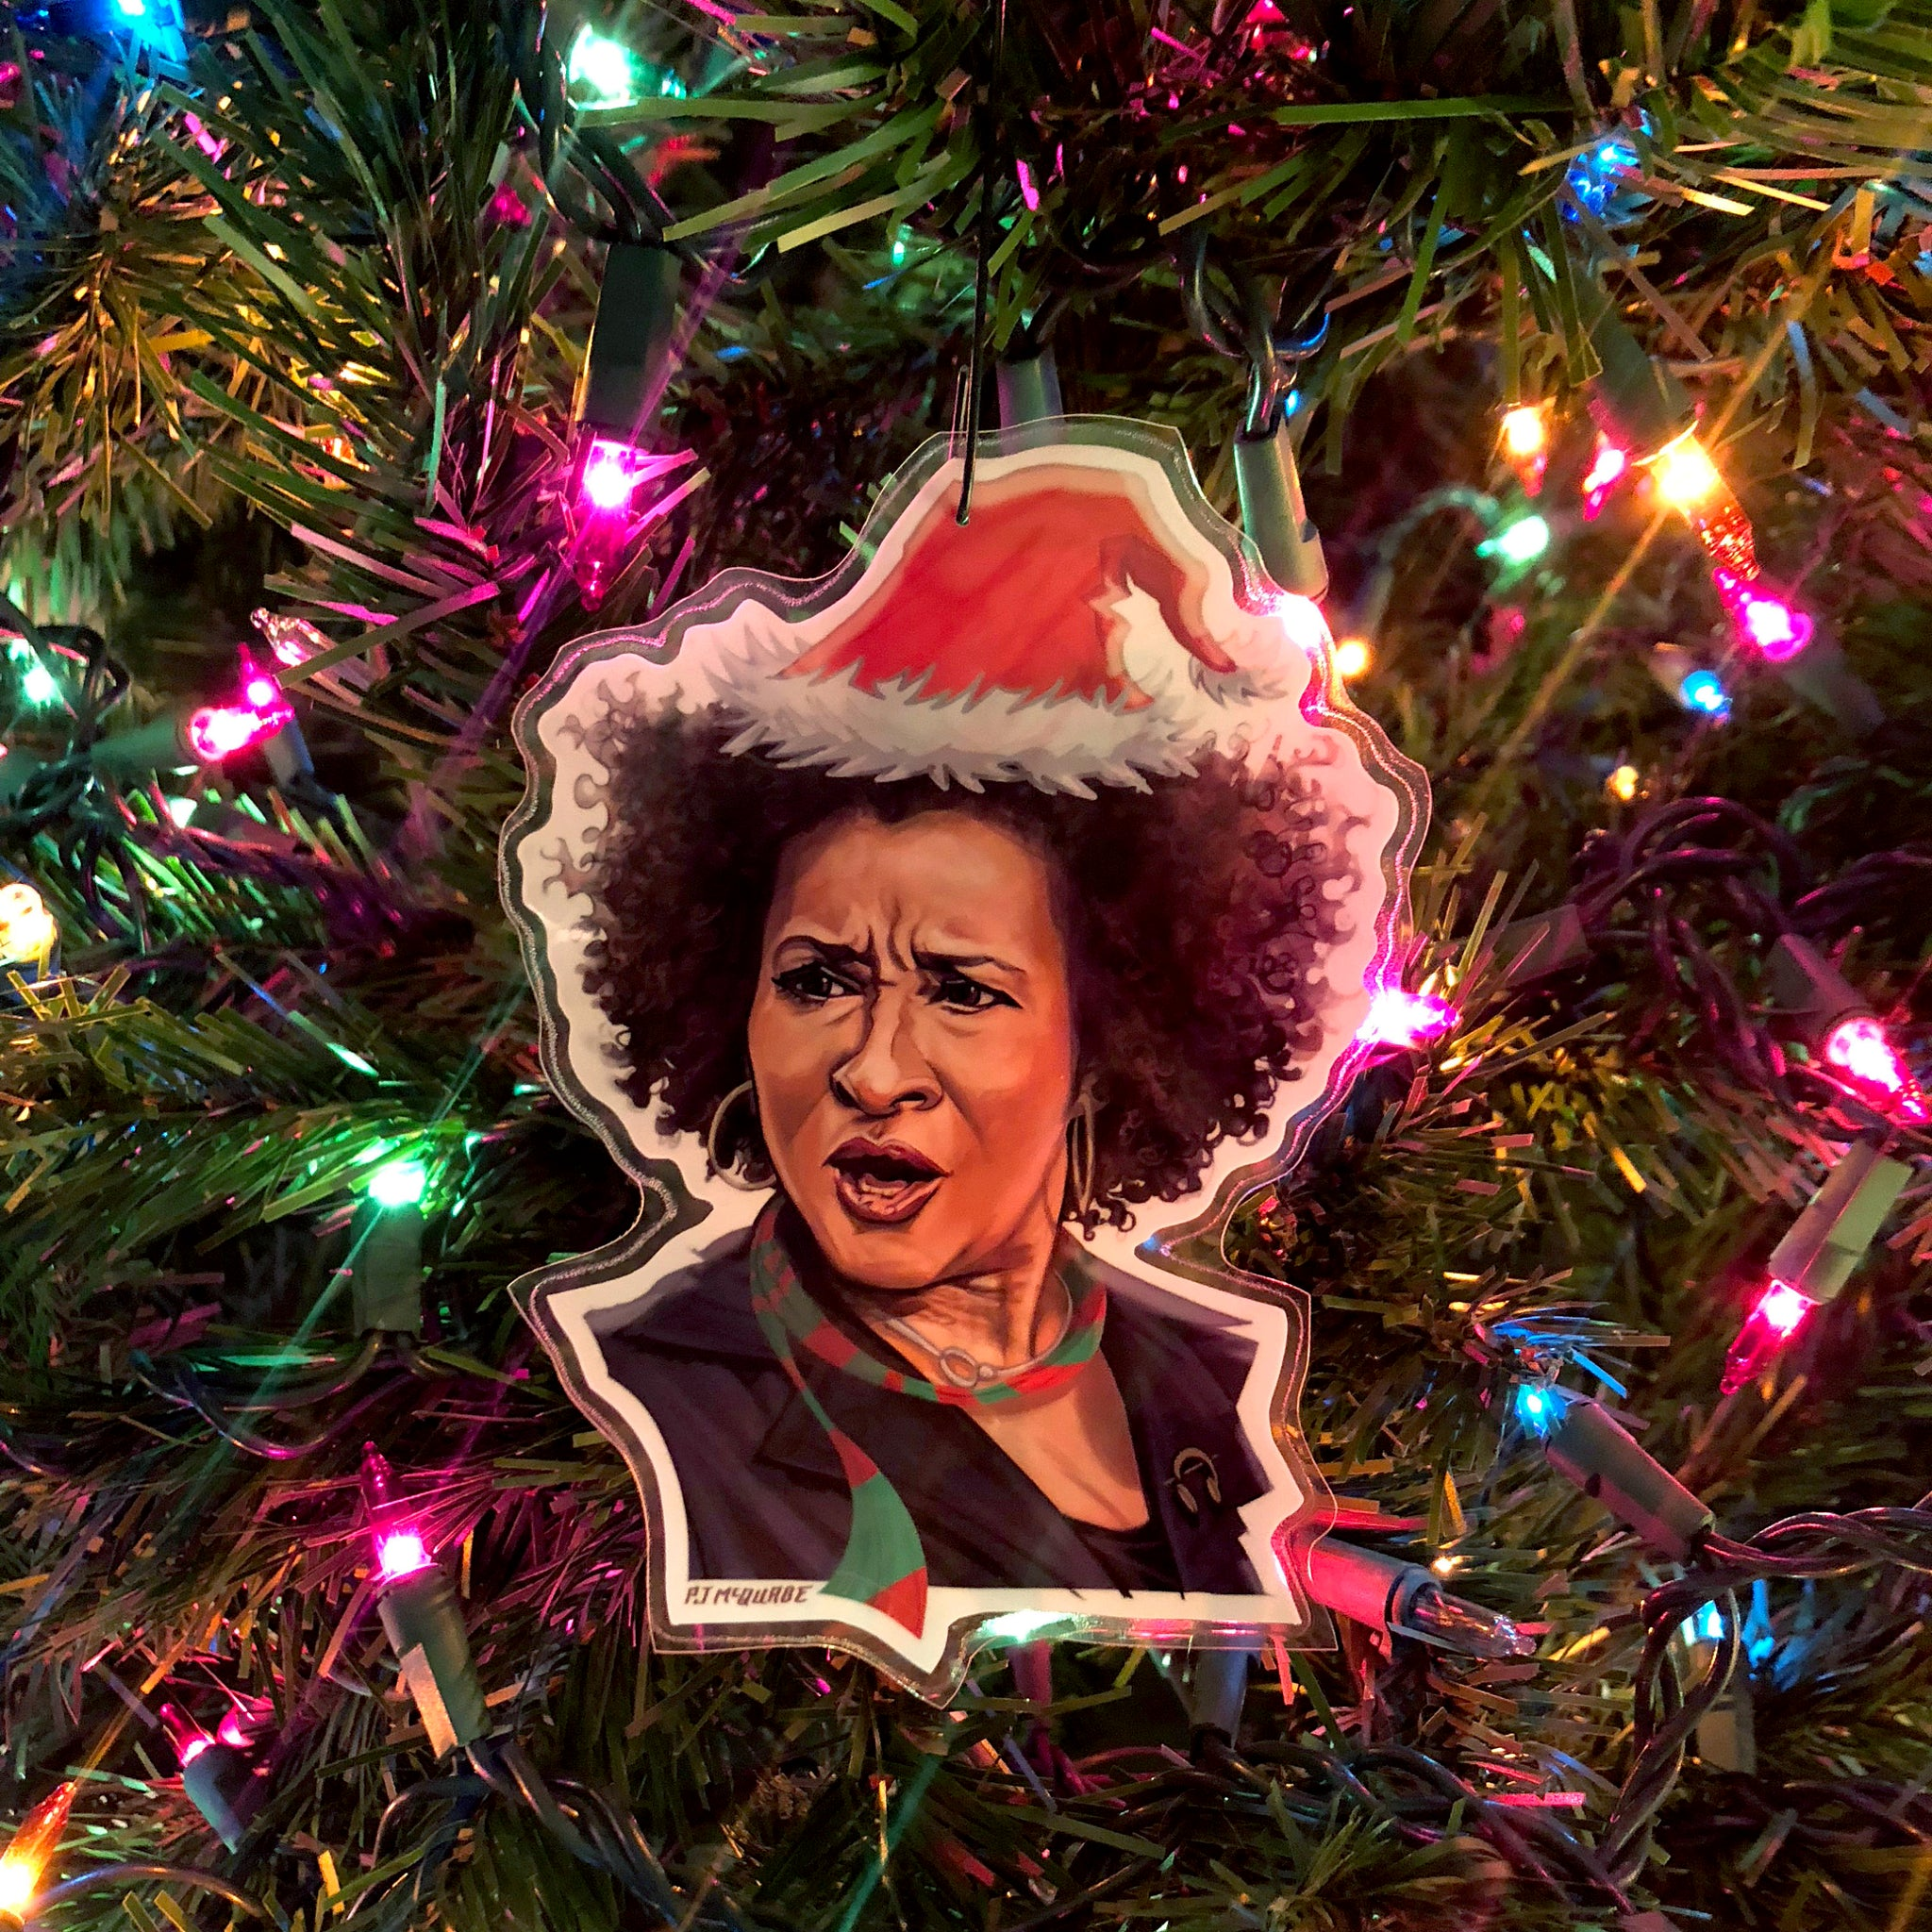 WANDA SYKES Curb Your Enthusiasm Christmas ORNAMENT!